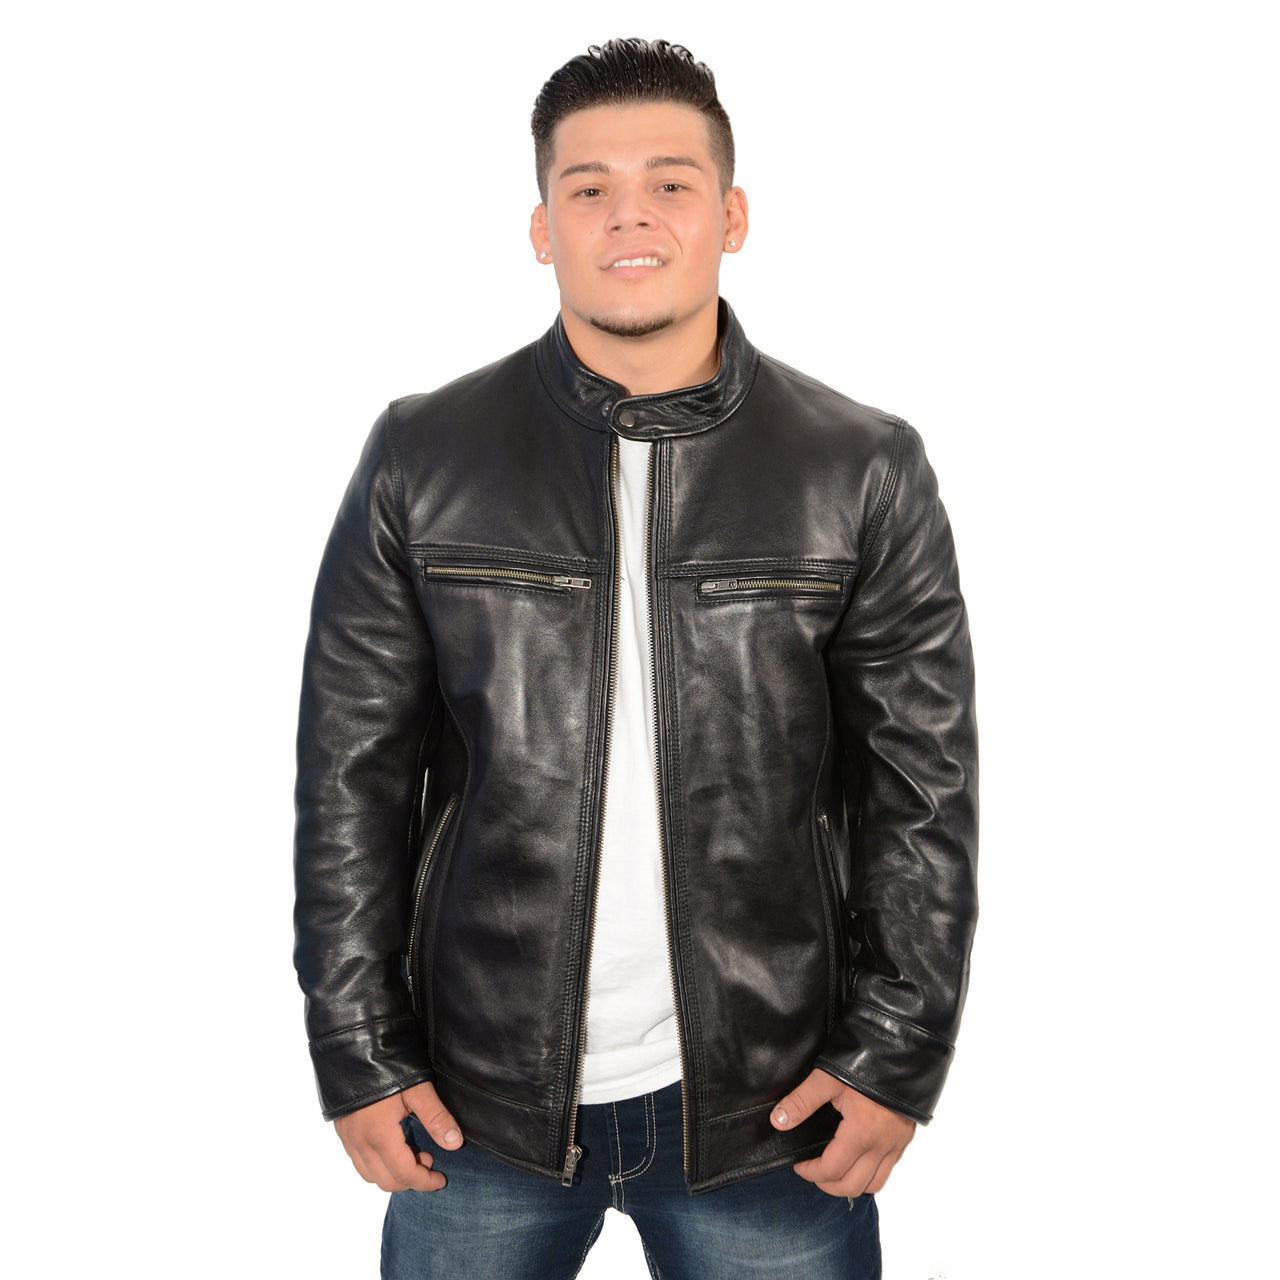 Men's stand up snap collar racer jacket with triple stitch accents. - HighwayLeather